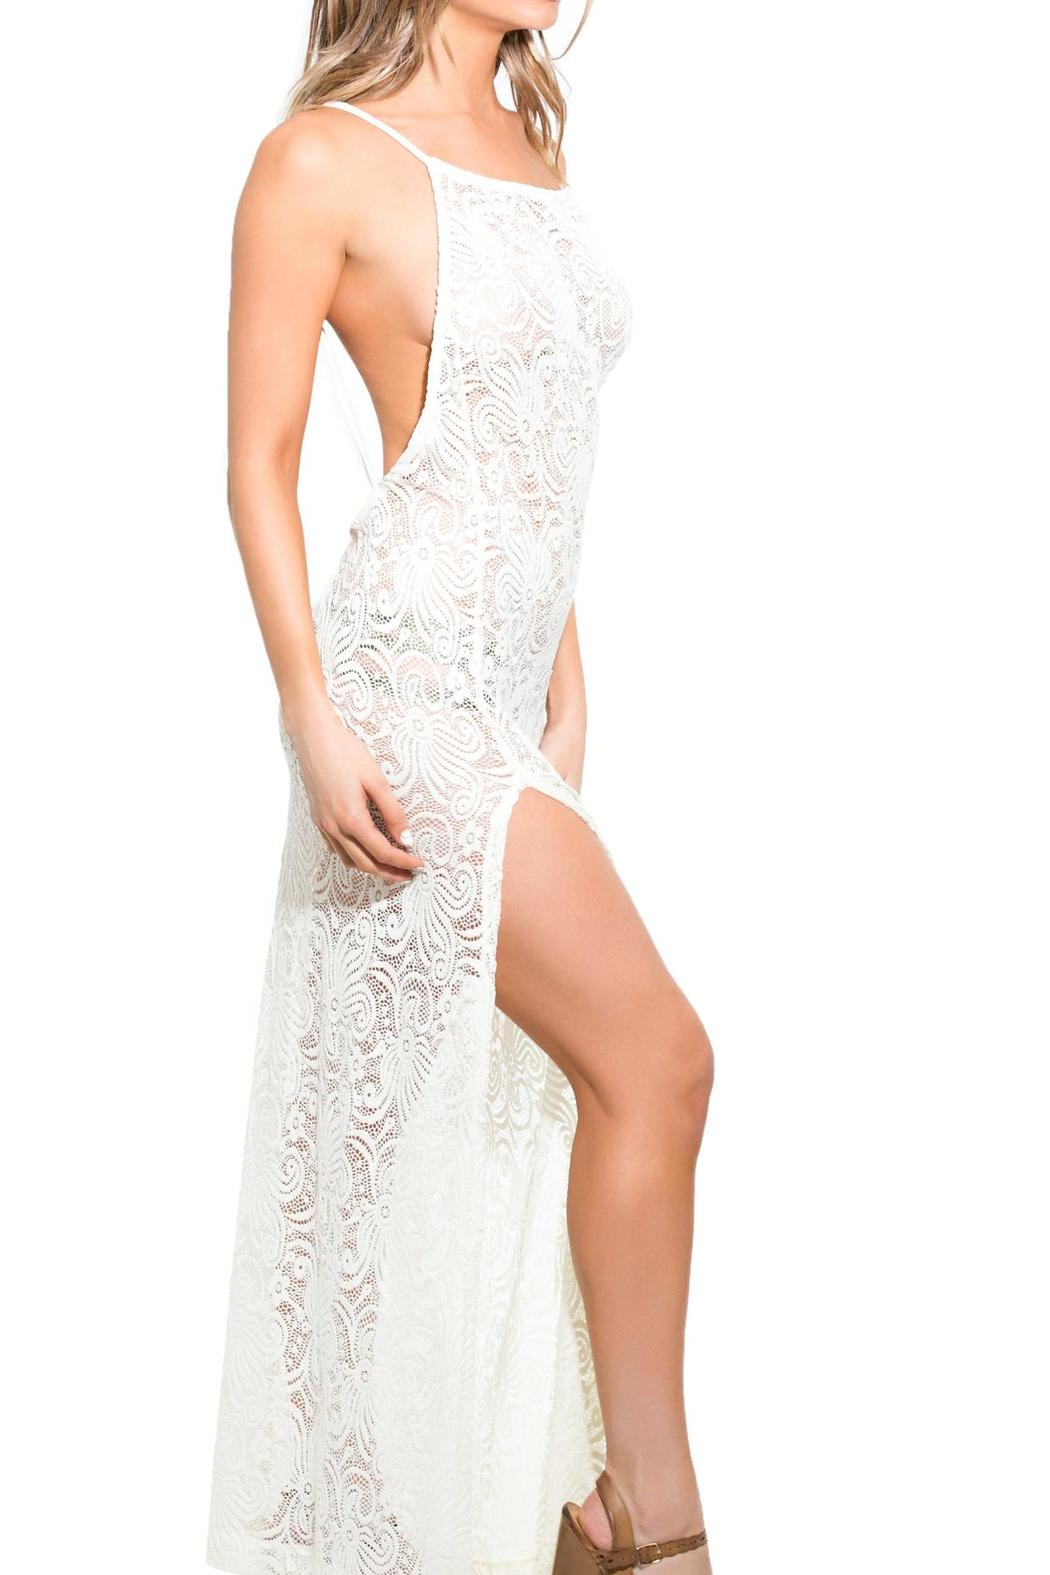 BeachCandy Backless Lace Coverup - Front Full Image